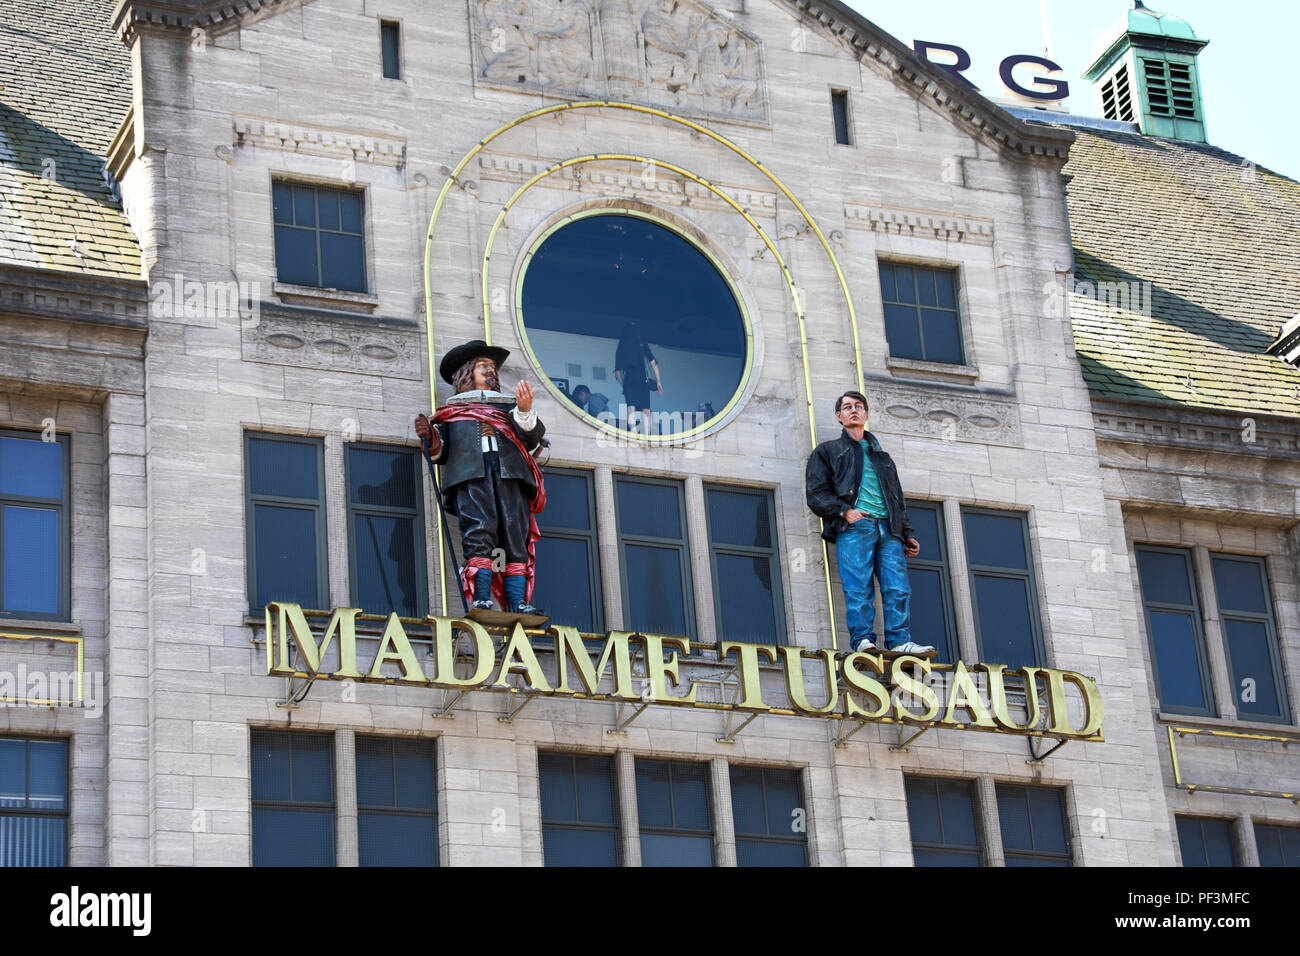 AMSTERDAM, NETHERLANDS - JUNE 6, 2018: entrance sign on the building of Madame Tussaud Museum in Amsterdam, Netherlands - Stock Image